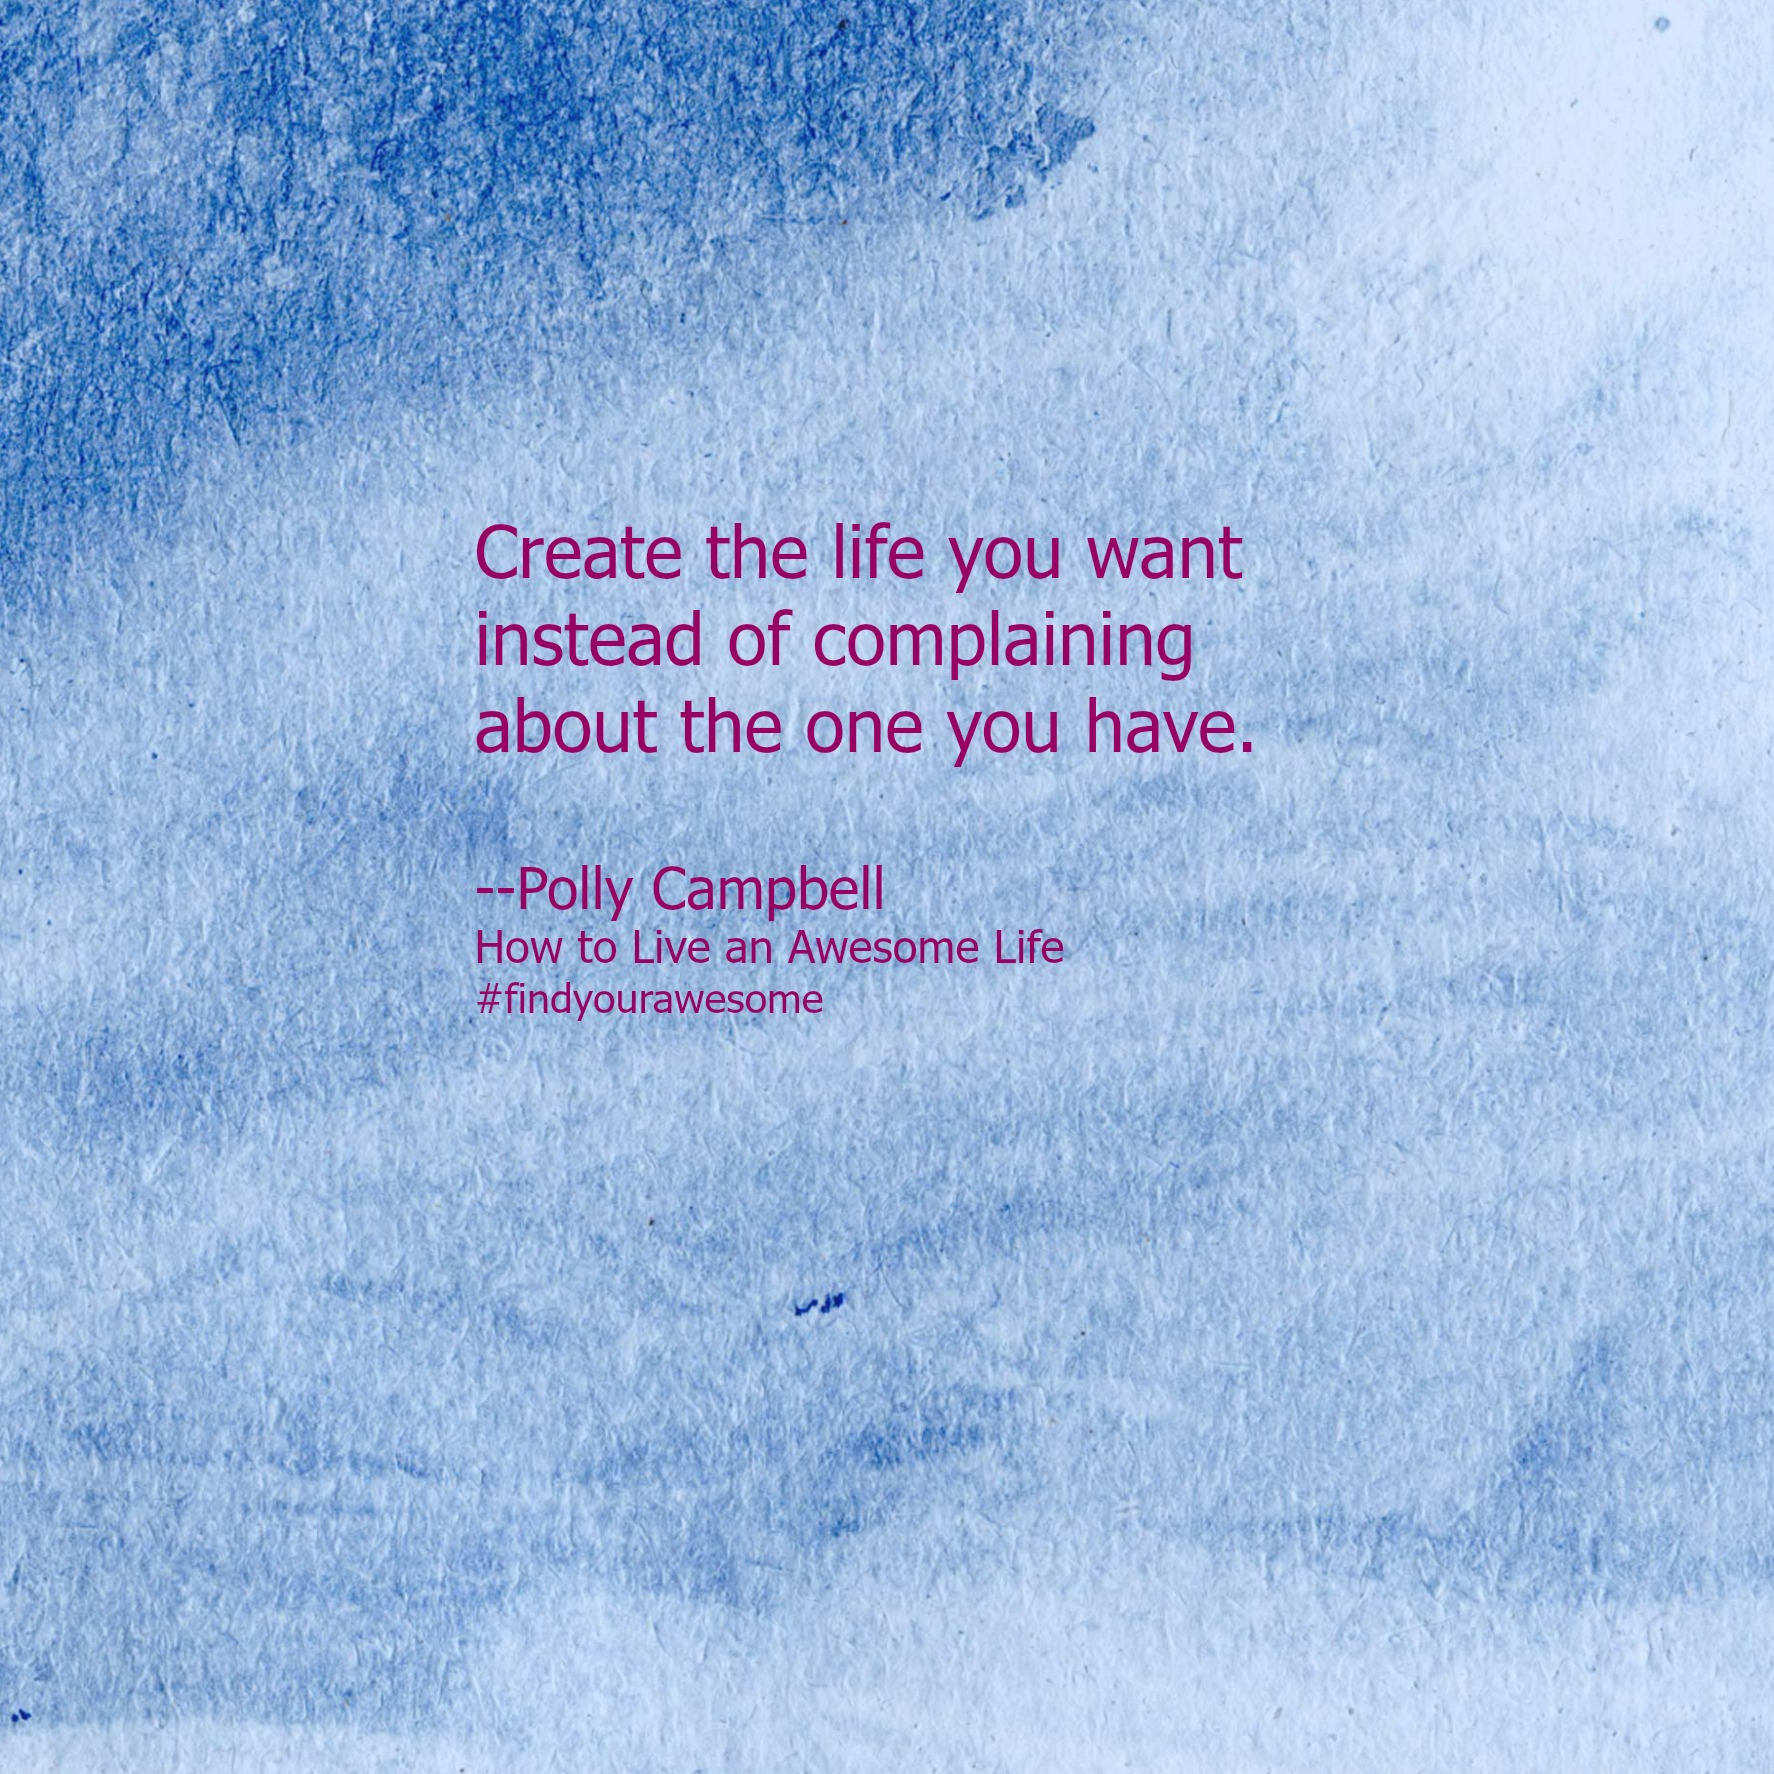 Creat your life